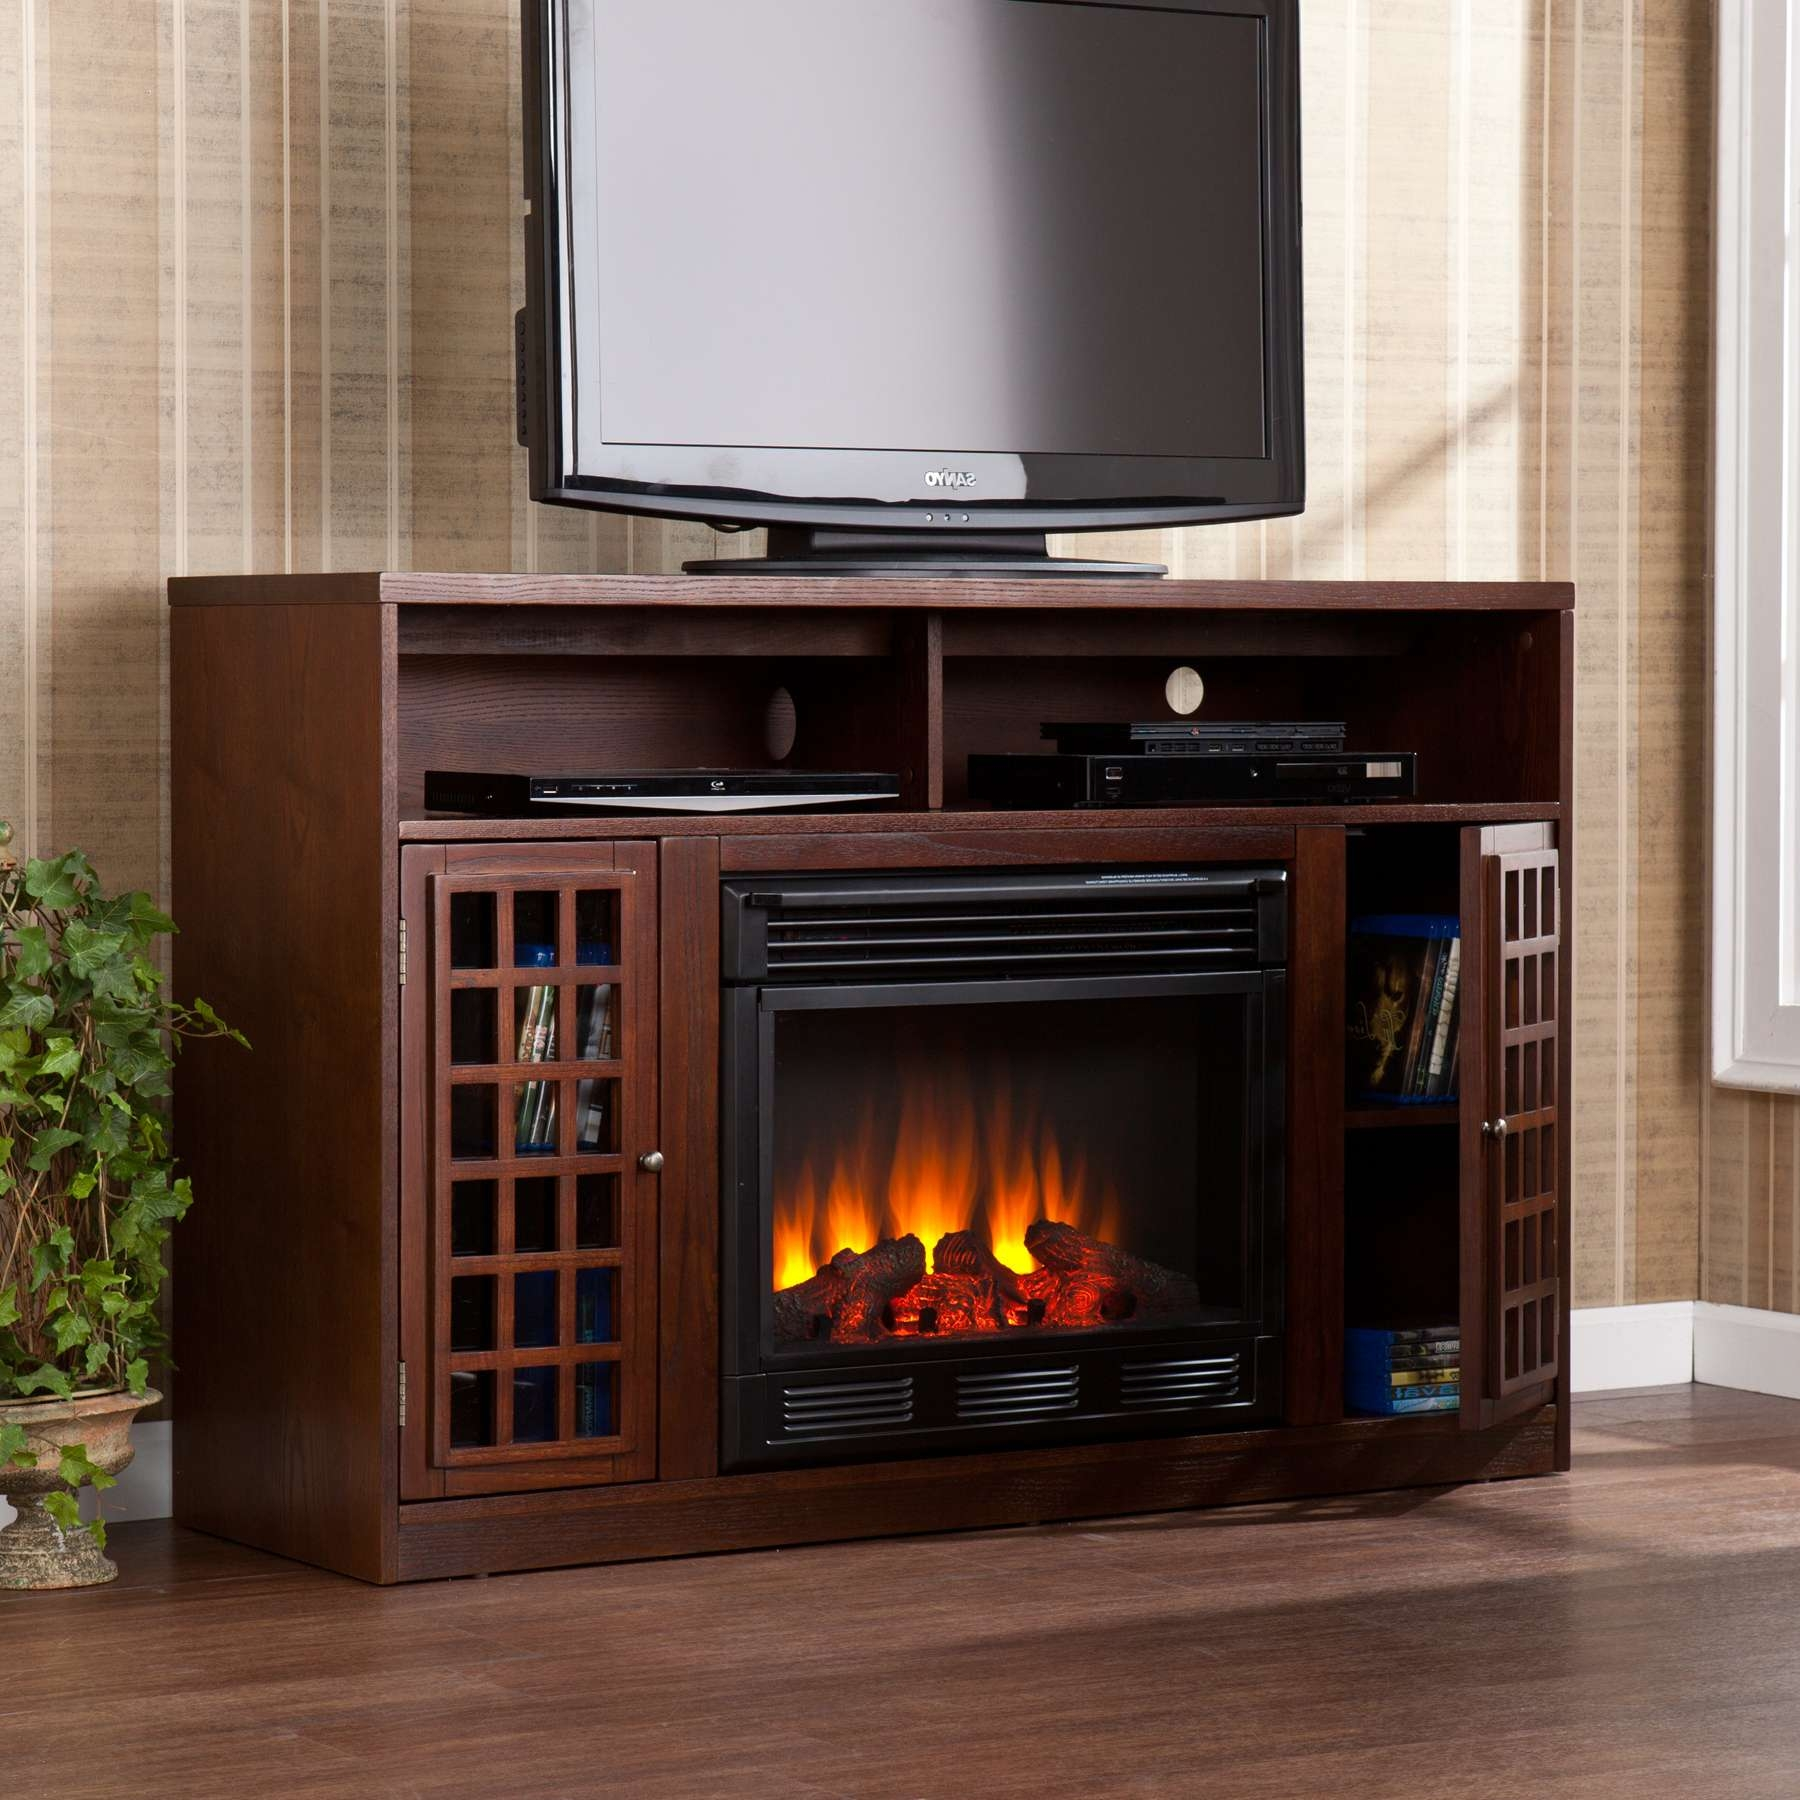 Photo gallery of 50 inch fireplace tv stands showing 9 of 15 photos electric corner fireplace heater inspirations beautiful tv stand inside 50 inch fireplace tv stands gallery teraionfo